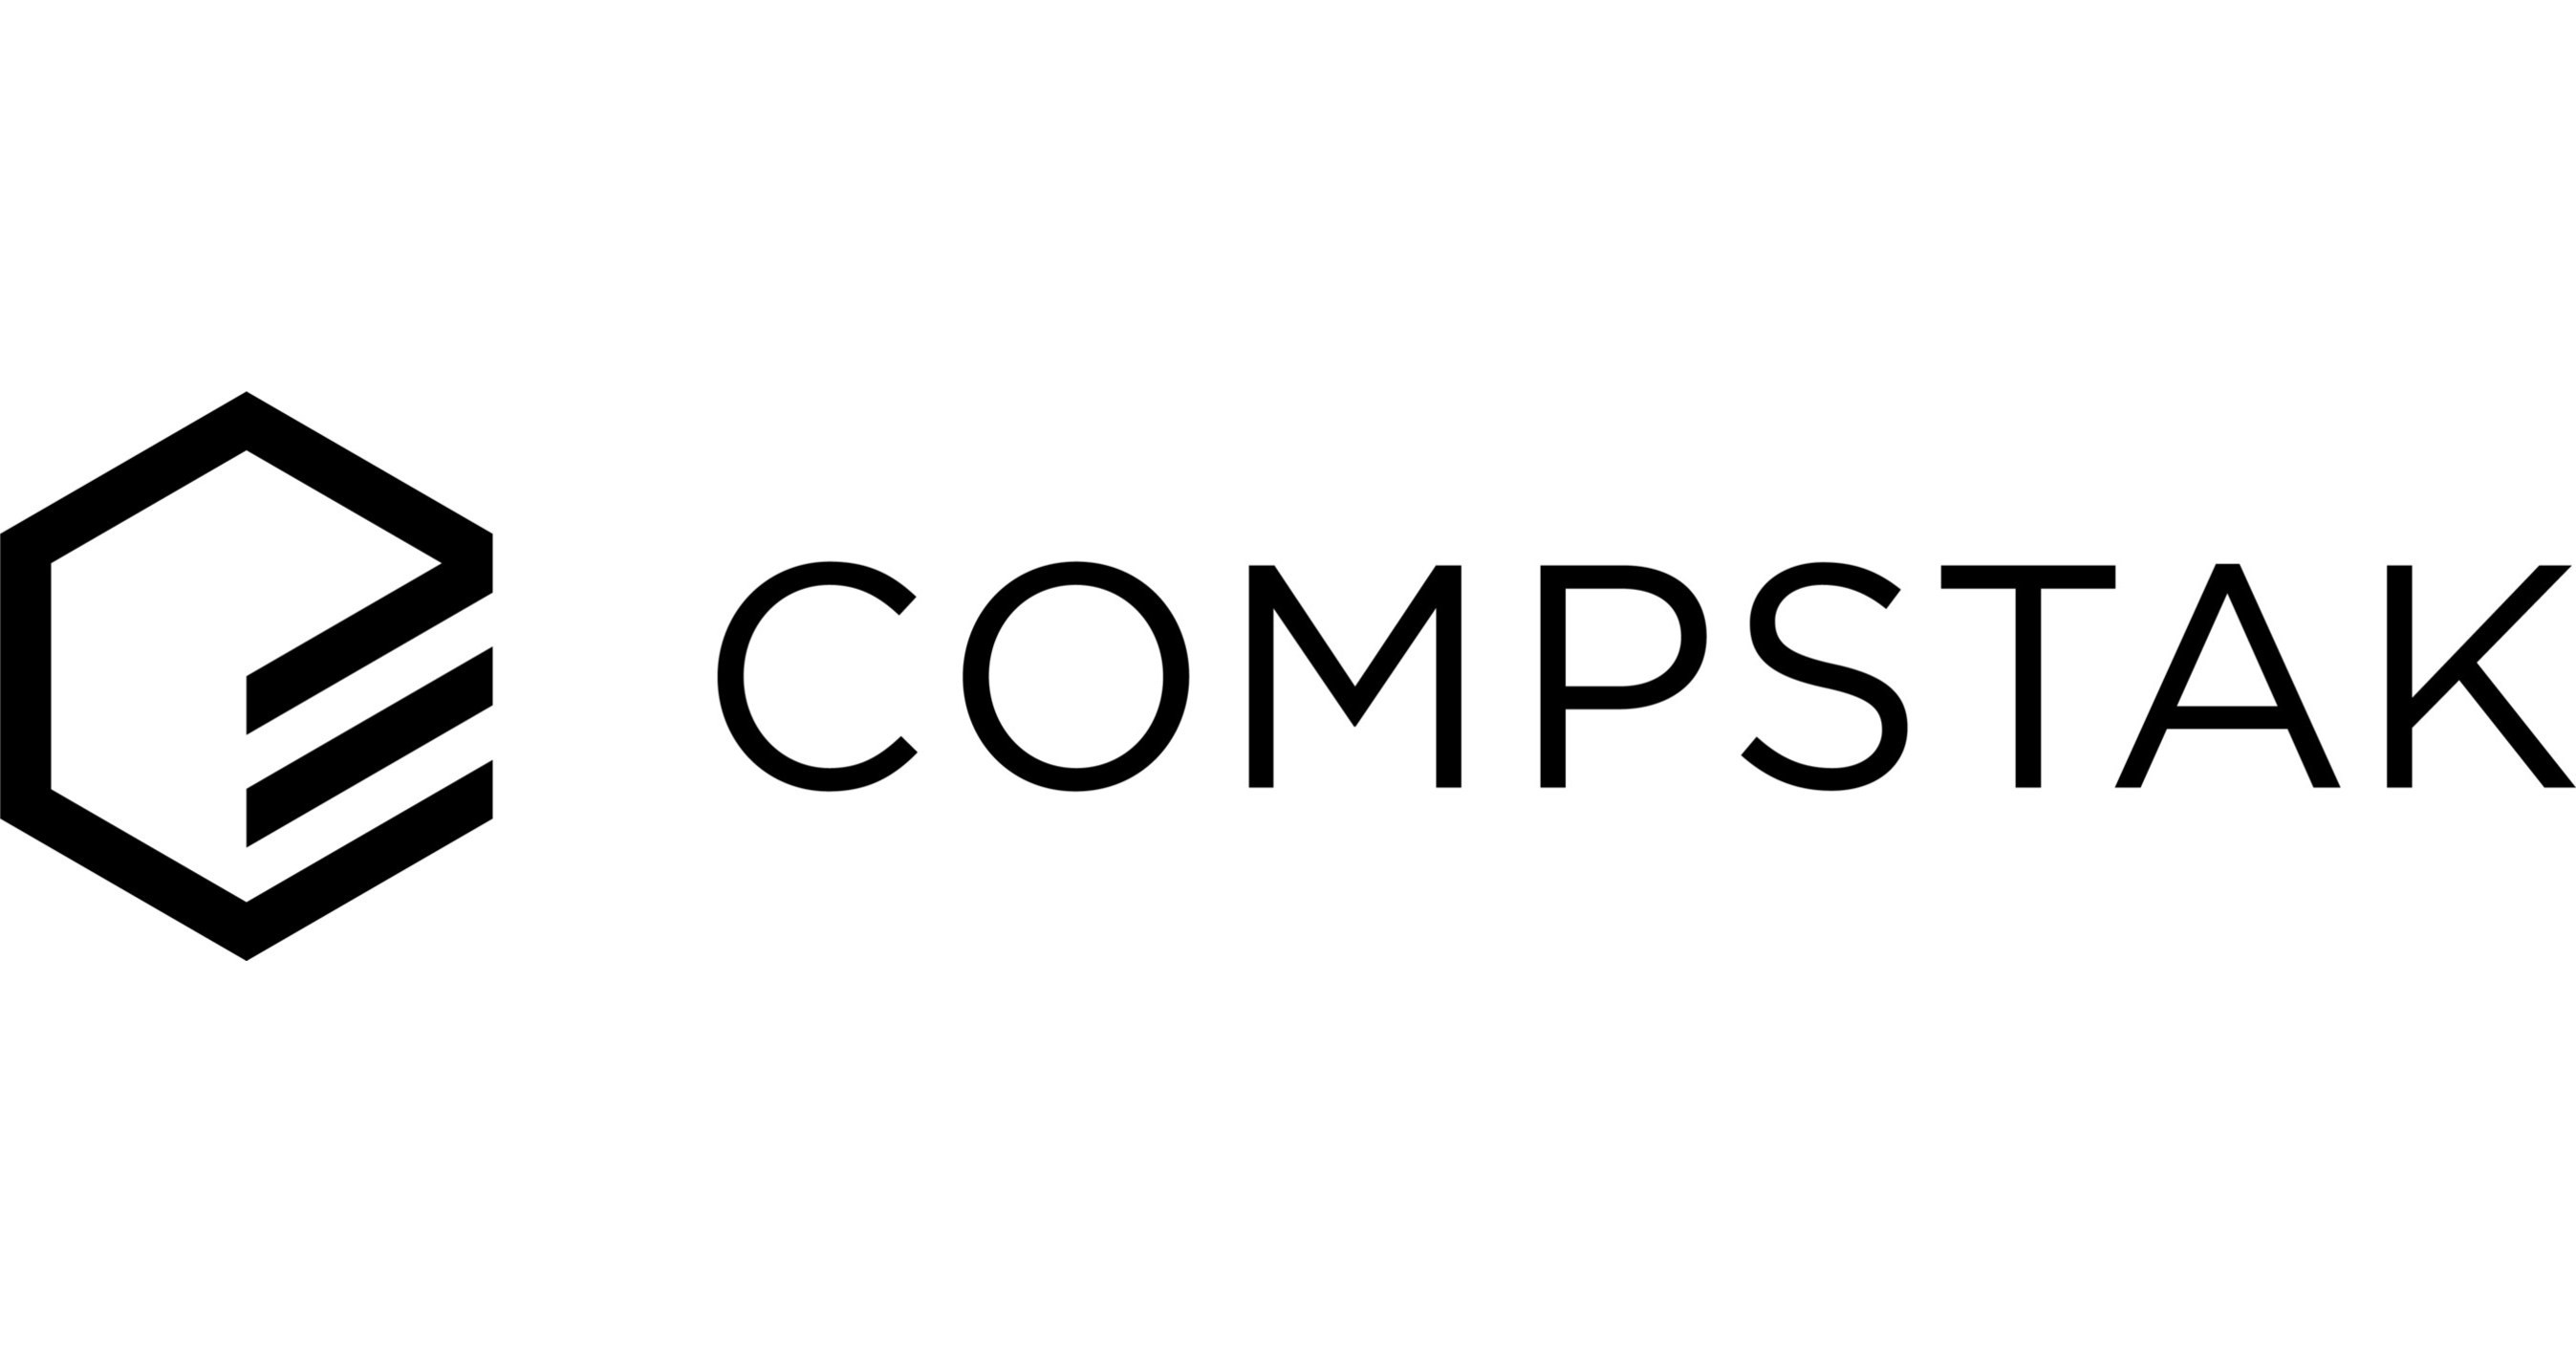 Cherre and CompStak Announce Partnership to Integrate Verified Lease Comps  and Transaction Analytics into Cherre's Platform